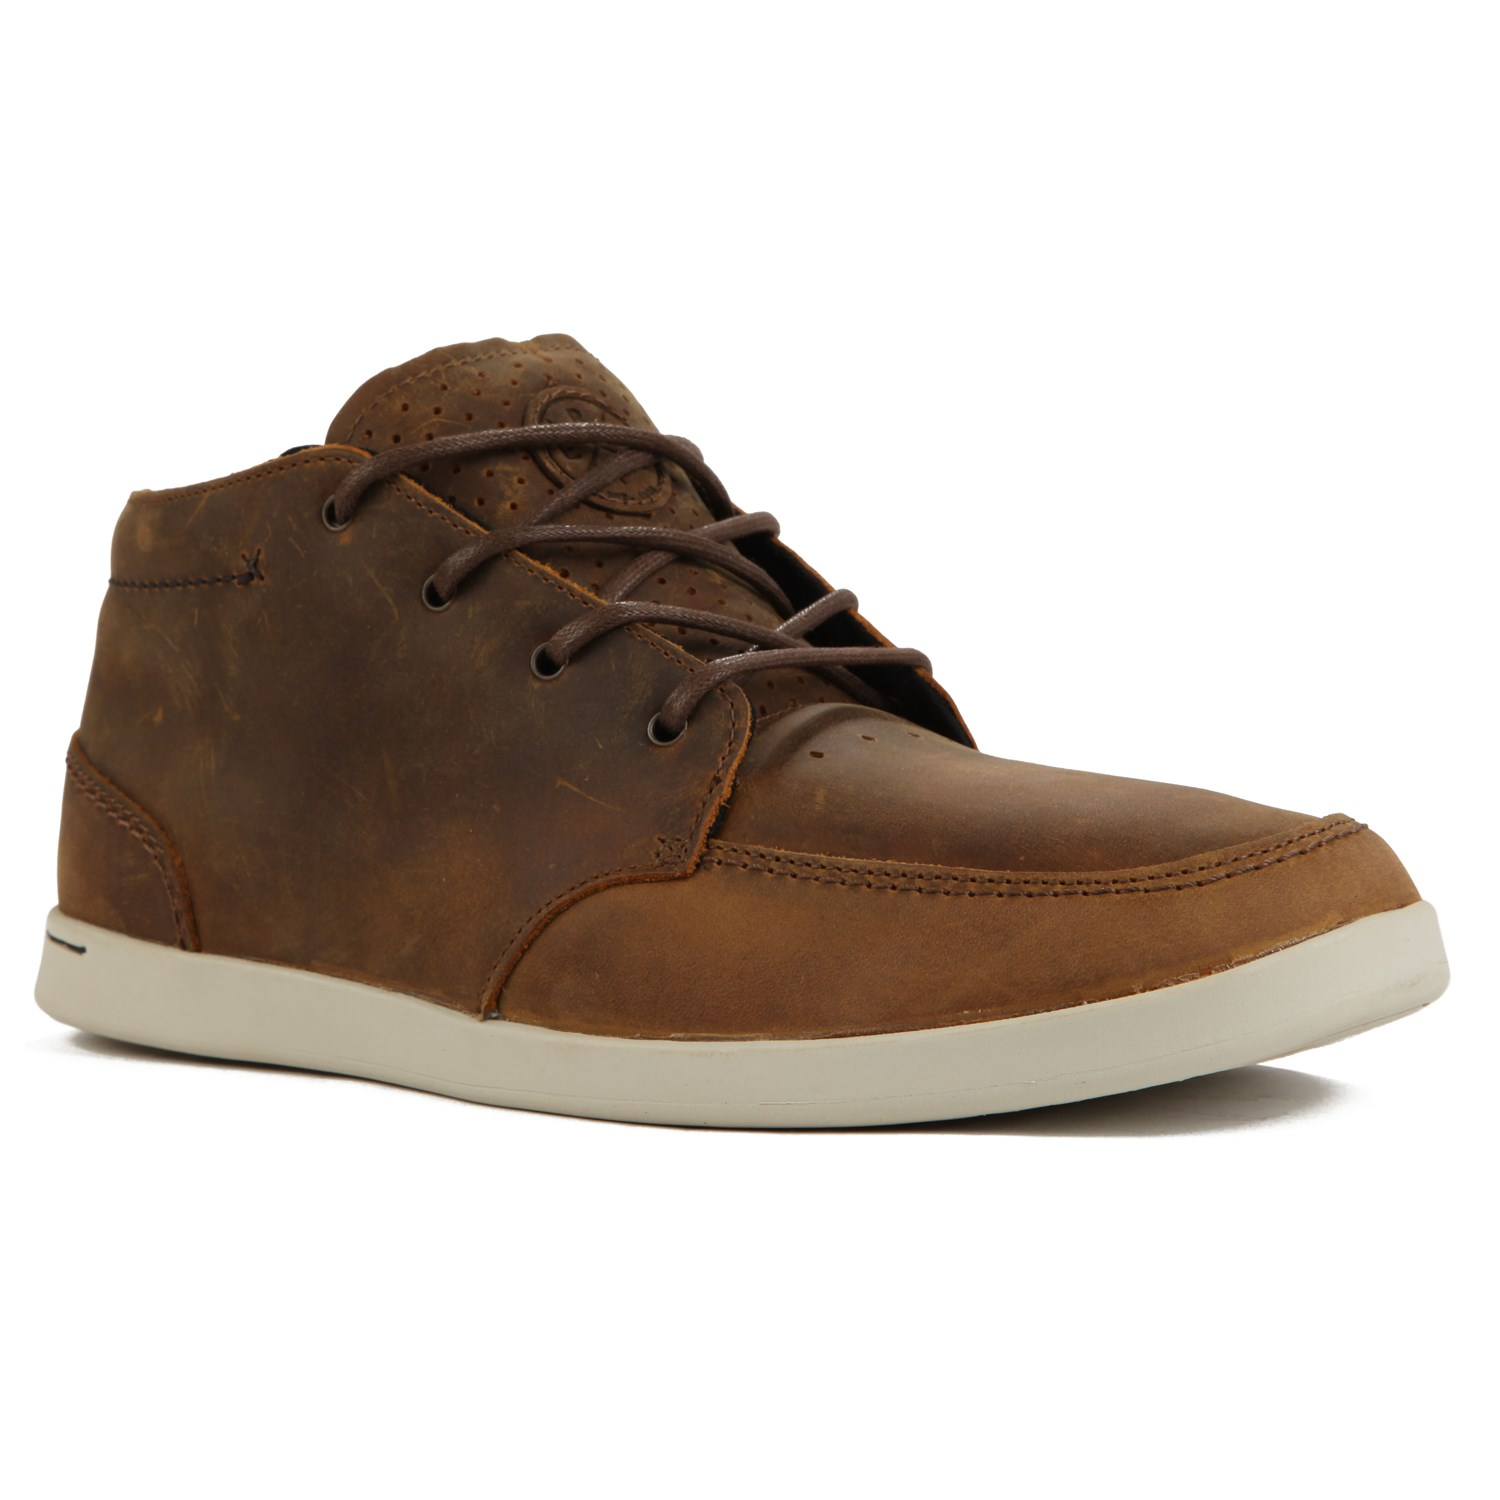 reef shoes reef spiniker mid shoes | evo firvalk